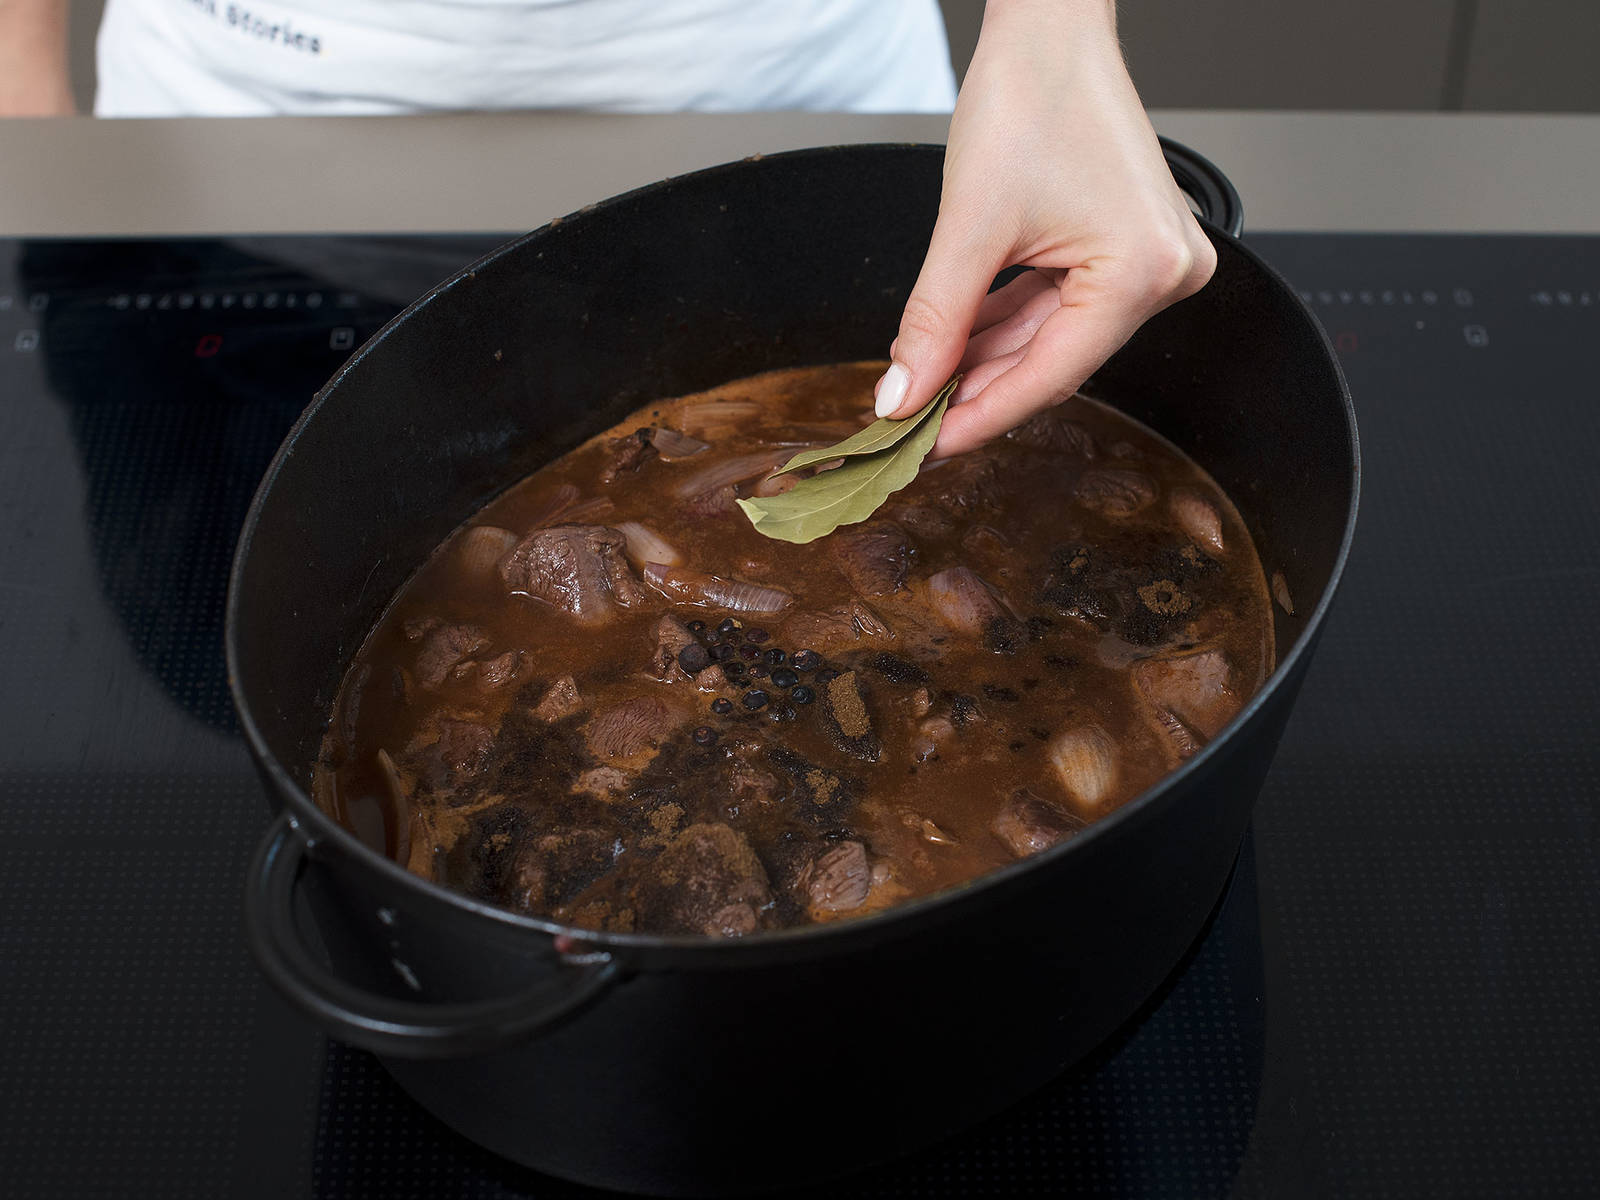 Add beef stock, juniper berries, bay leaves, and venison spice to the pot, and leave to simmer on low heat for approx. 1.5 hrs., stirring occasionally. Remove juniper berries and bay leaves. Add chanterelles and let simmer for another 15 min. Add salt and pepper to taste. Garnish with chopped parsley and crème fraîche. Serve with juniper berry marmalade and semolina dumplings. Enjoy!